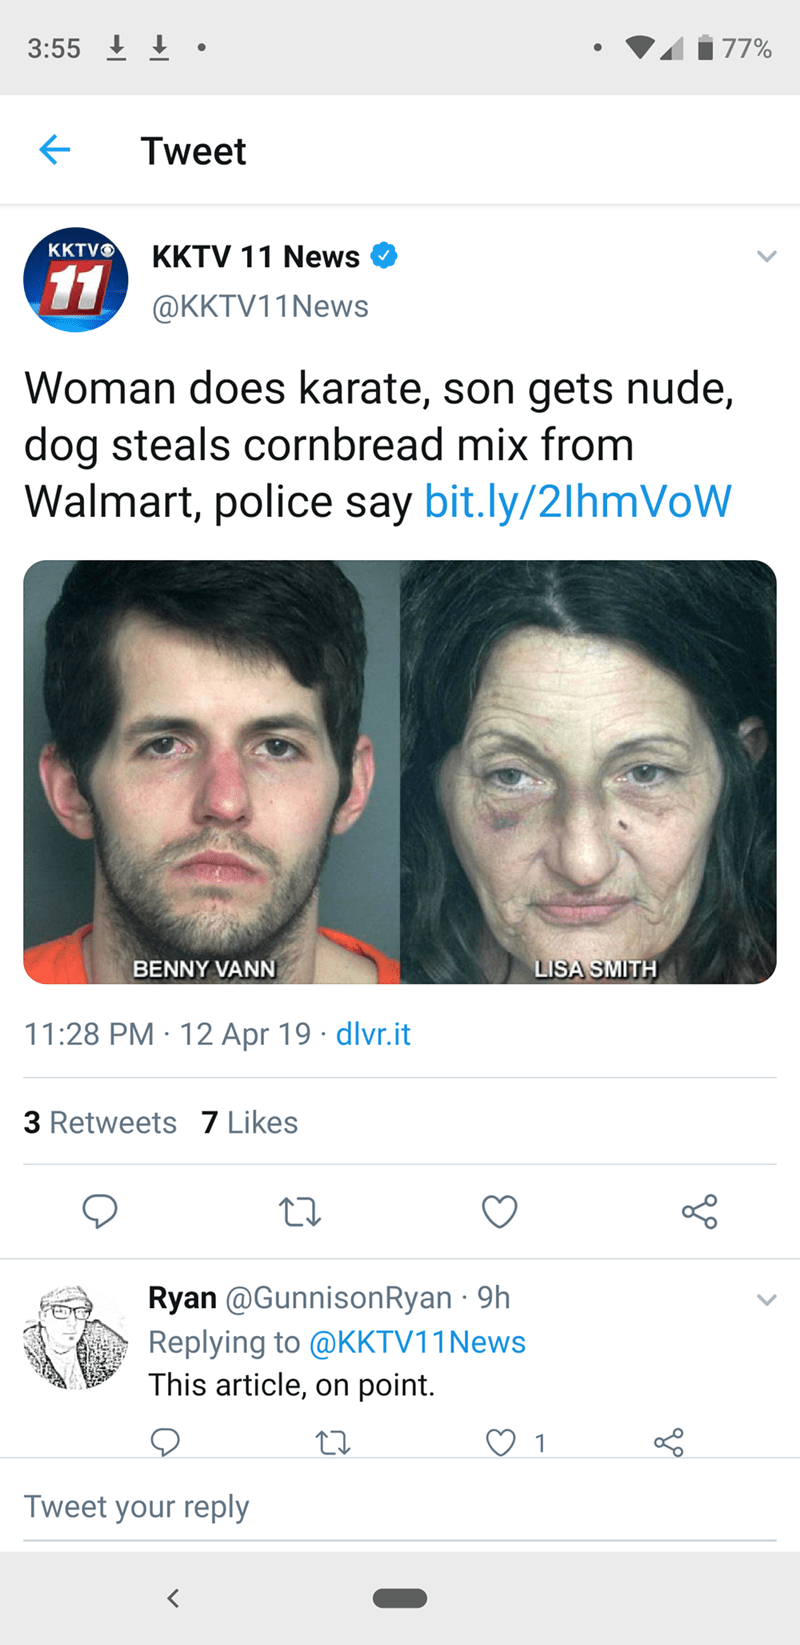 """Tweet - """"Woman does karate, son gets nude, dog steals cornbread mix from Walmart, police say; This article, on point."""""""